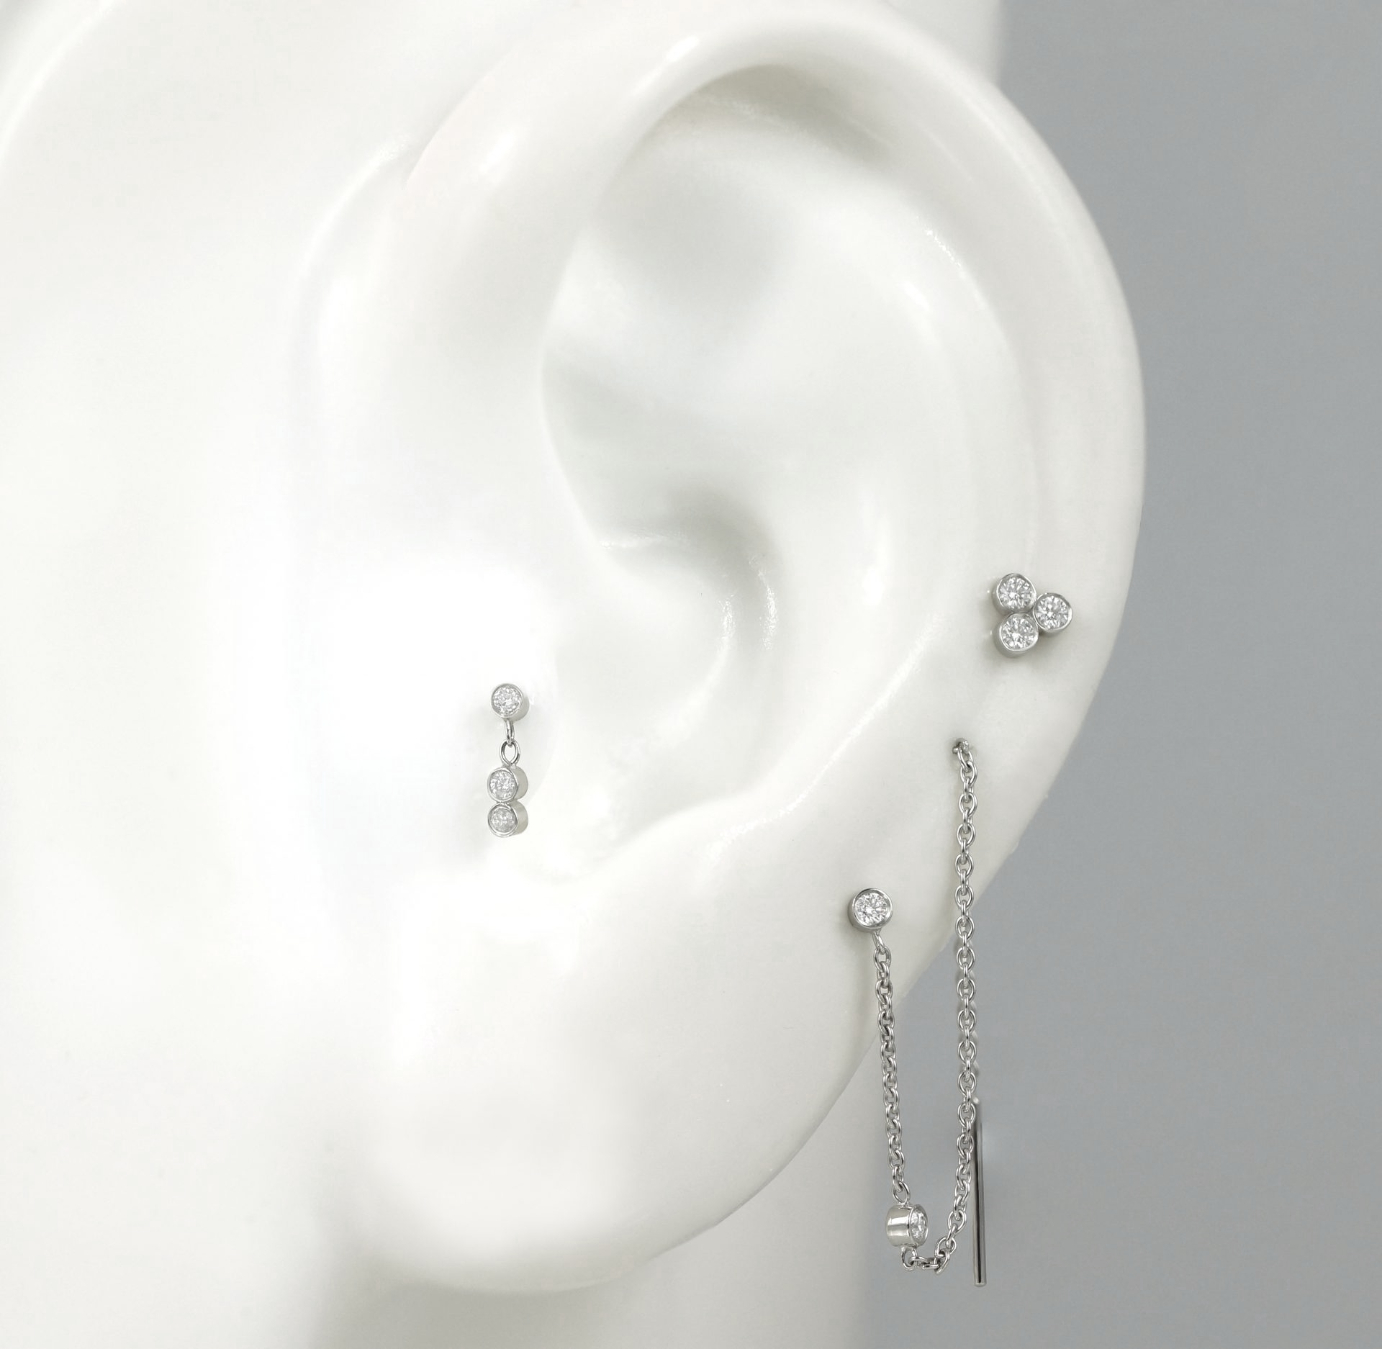 lena-cohen-fine-jewellery-create-curated-ear-with-lena-cohen-ready-to-wear-piercing-errings-set-discount